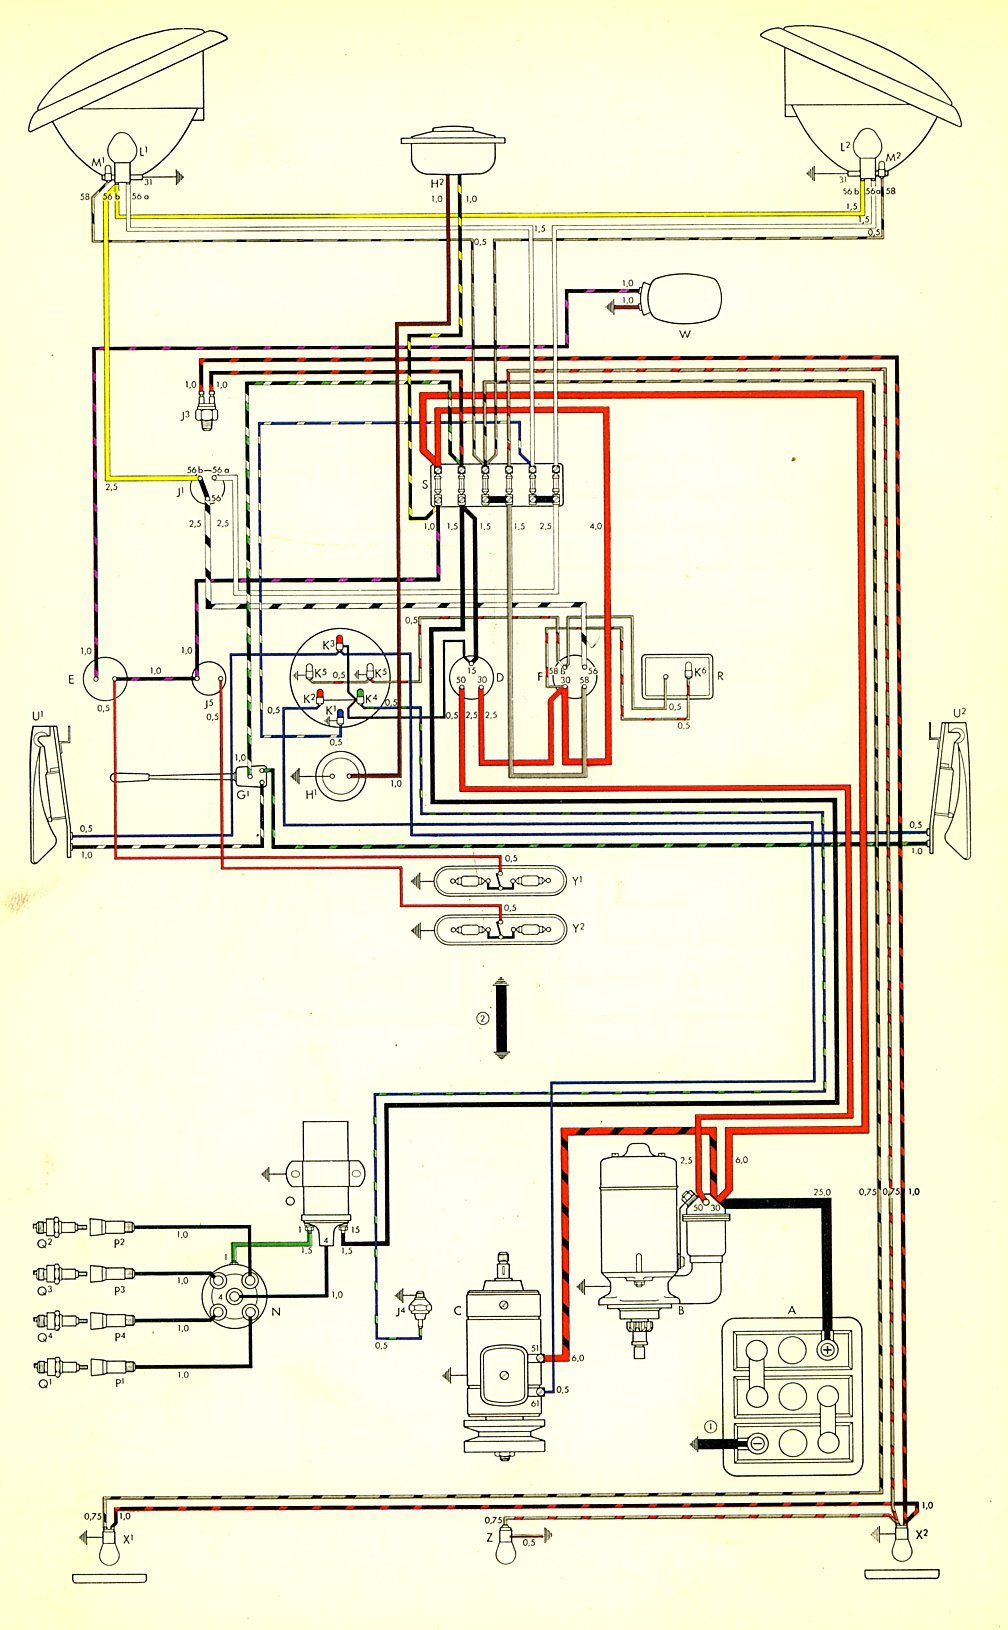 hight resolution of eagle bus wiring schematics wiring diagram sheet silver eagle bus wiring diagram eagle bus wiring diagram